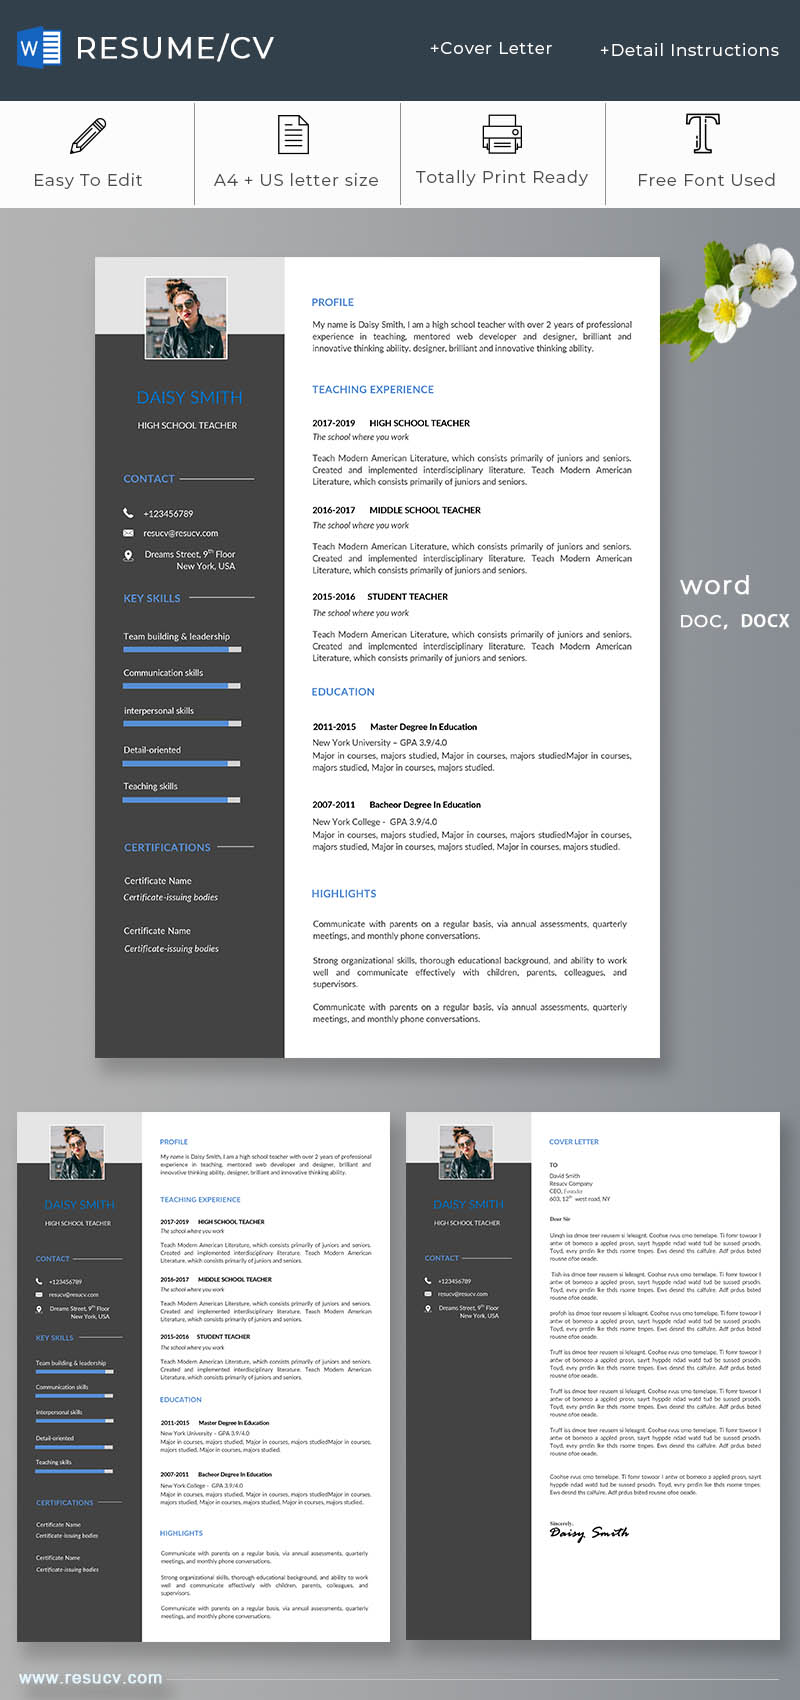 Simple school teacher resume/cv template word format